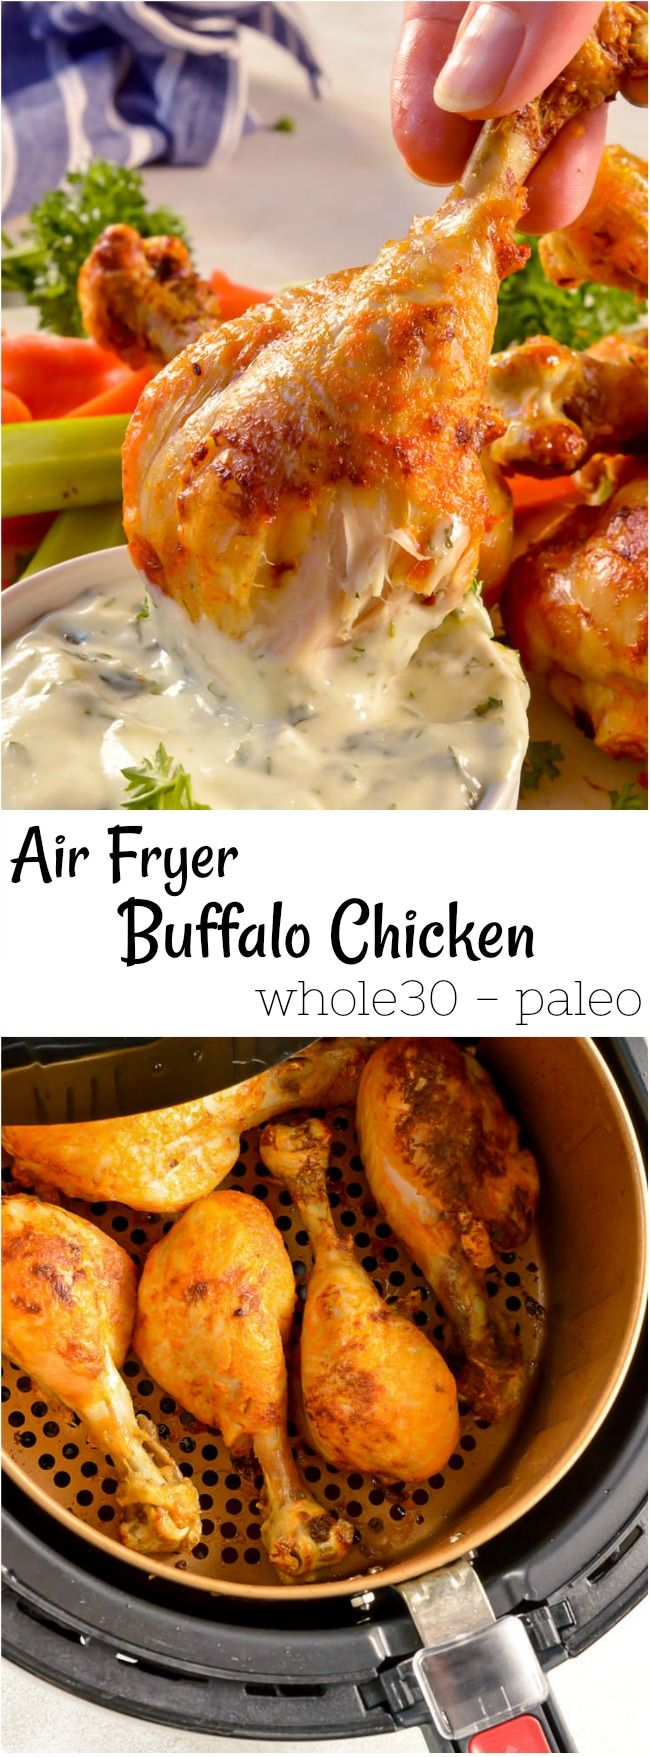 Are you crazy excited to start cooking with your air fryer!?!? These Buffalo Chicken Air Fryer Chicken Legs are perfect for beginners. All that great Buffalo Chicken Wing taste without the fat from deep frying. Plus, we are using chicken drumsticks for a meatier meal! #airfryer #buffalochicken #whole30 #paleodiet